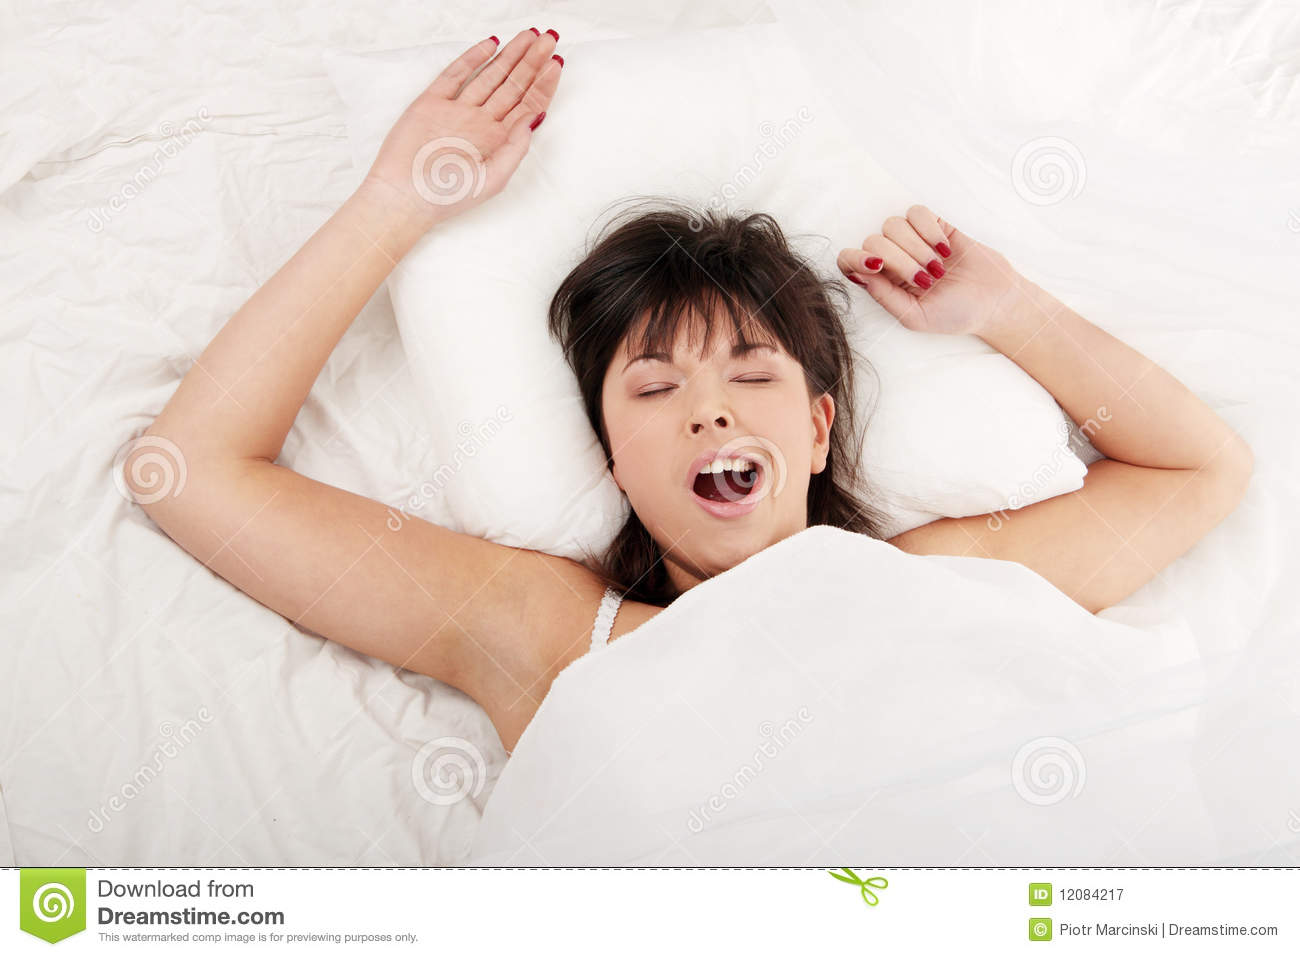 26 132 Lazy Bed Photos Free Royalty Free Stock Photos From Dreamstime